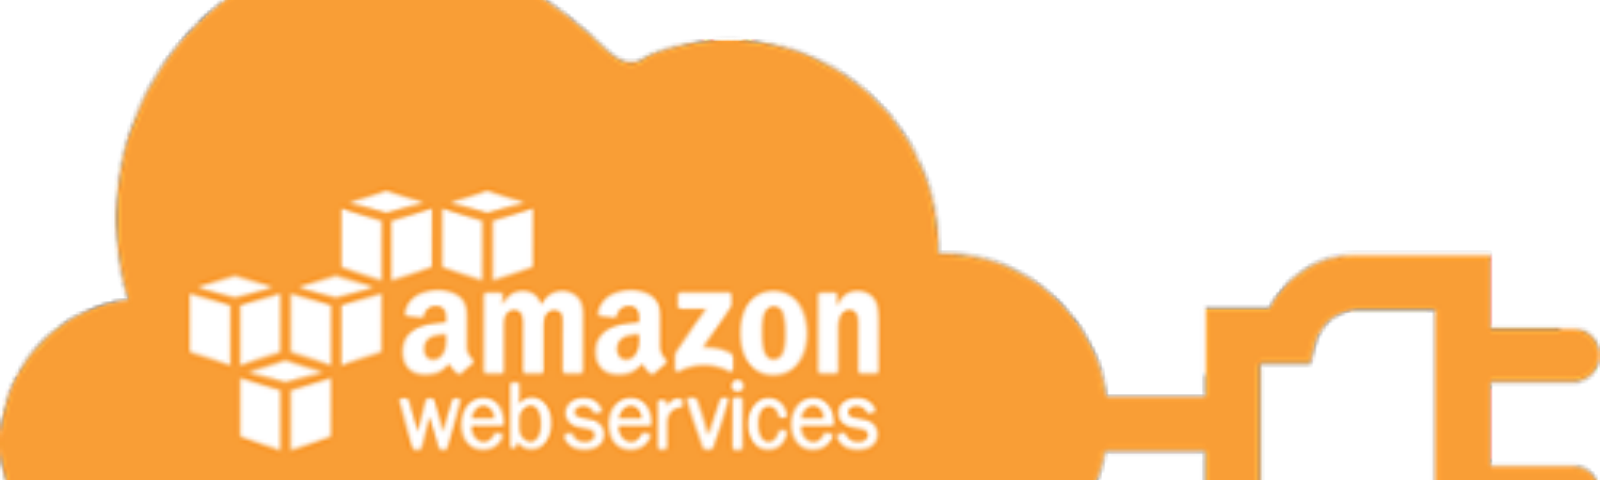 12 Best AWS Training Online— Prepare For AWS Certification — [Updated 2020]  | by Quick Code | Dev Tutorials